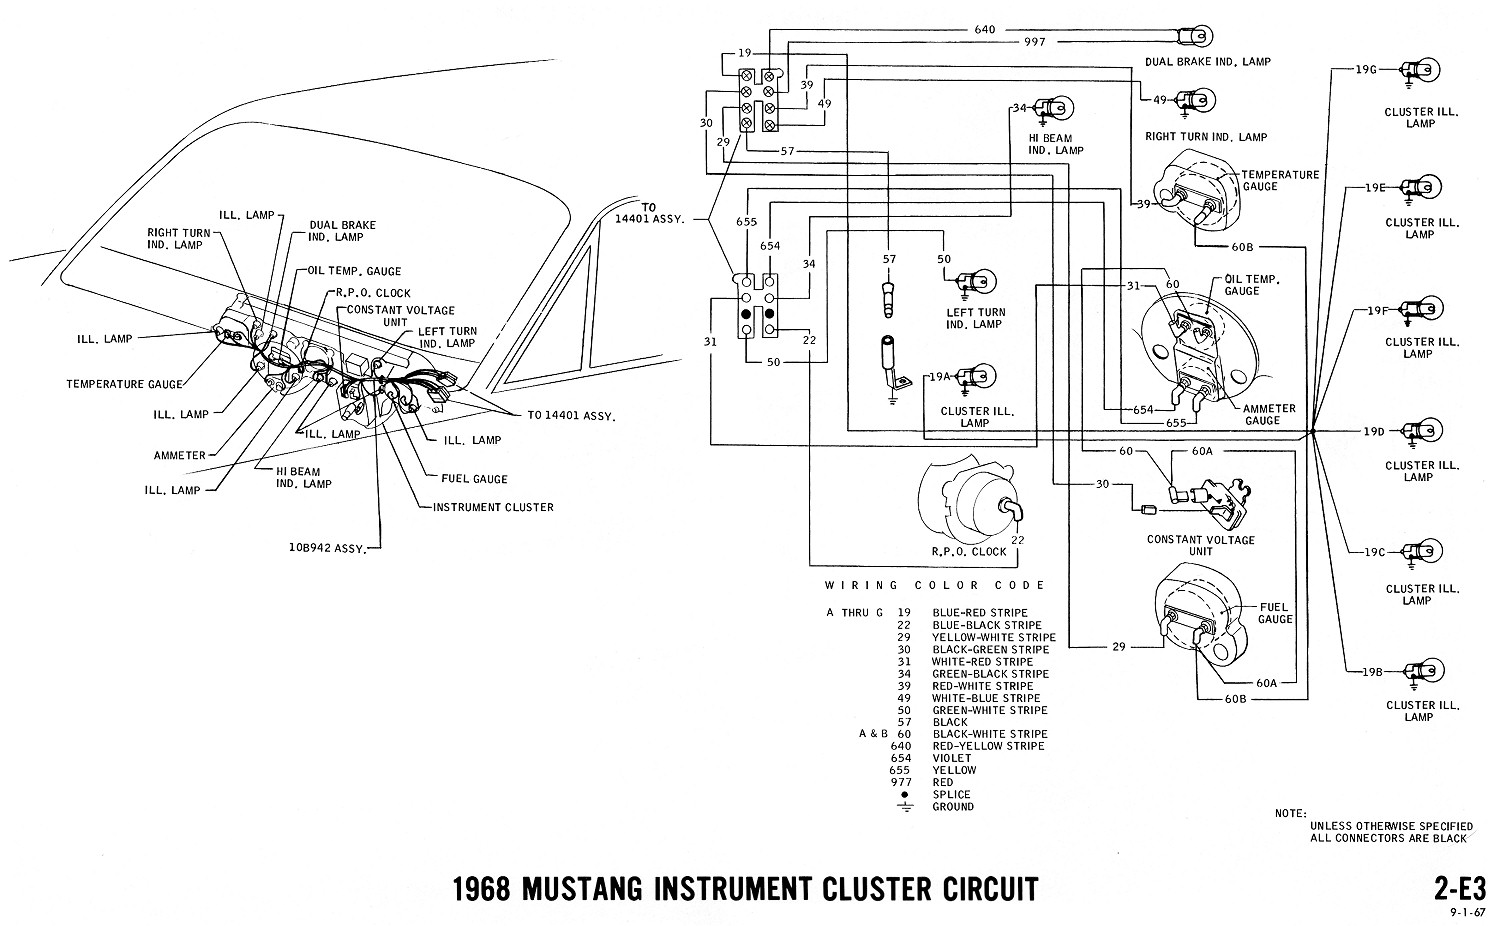 general radio wiring diagram with 1968 Mustang Wiring Diagrams on Faq further Dodge Ram Trailer Wiring Diagram furthermore Seat Heater Wiring Diagram additionally 88 Ford Ranger Headlight Wiring Diagram together with Index.